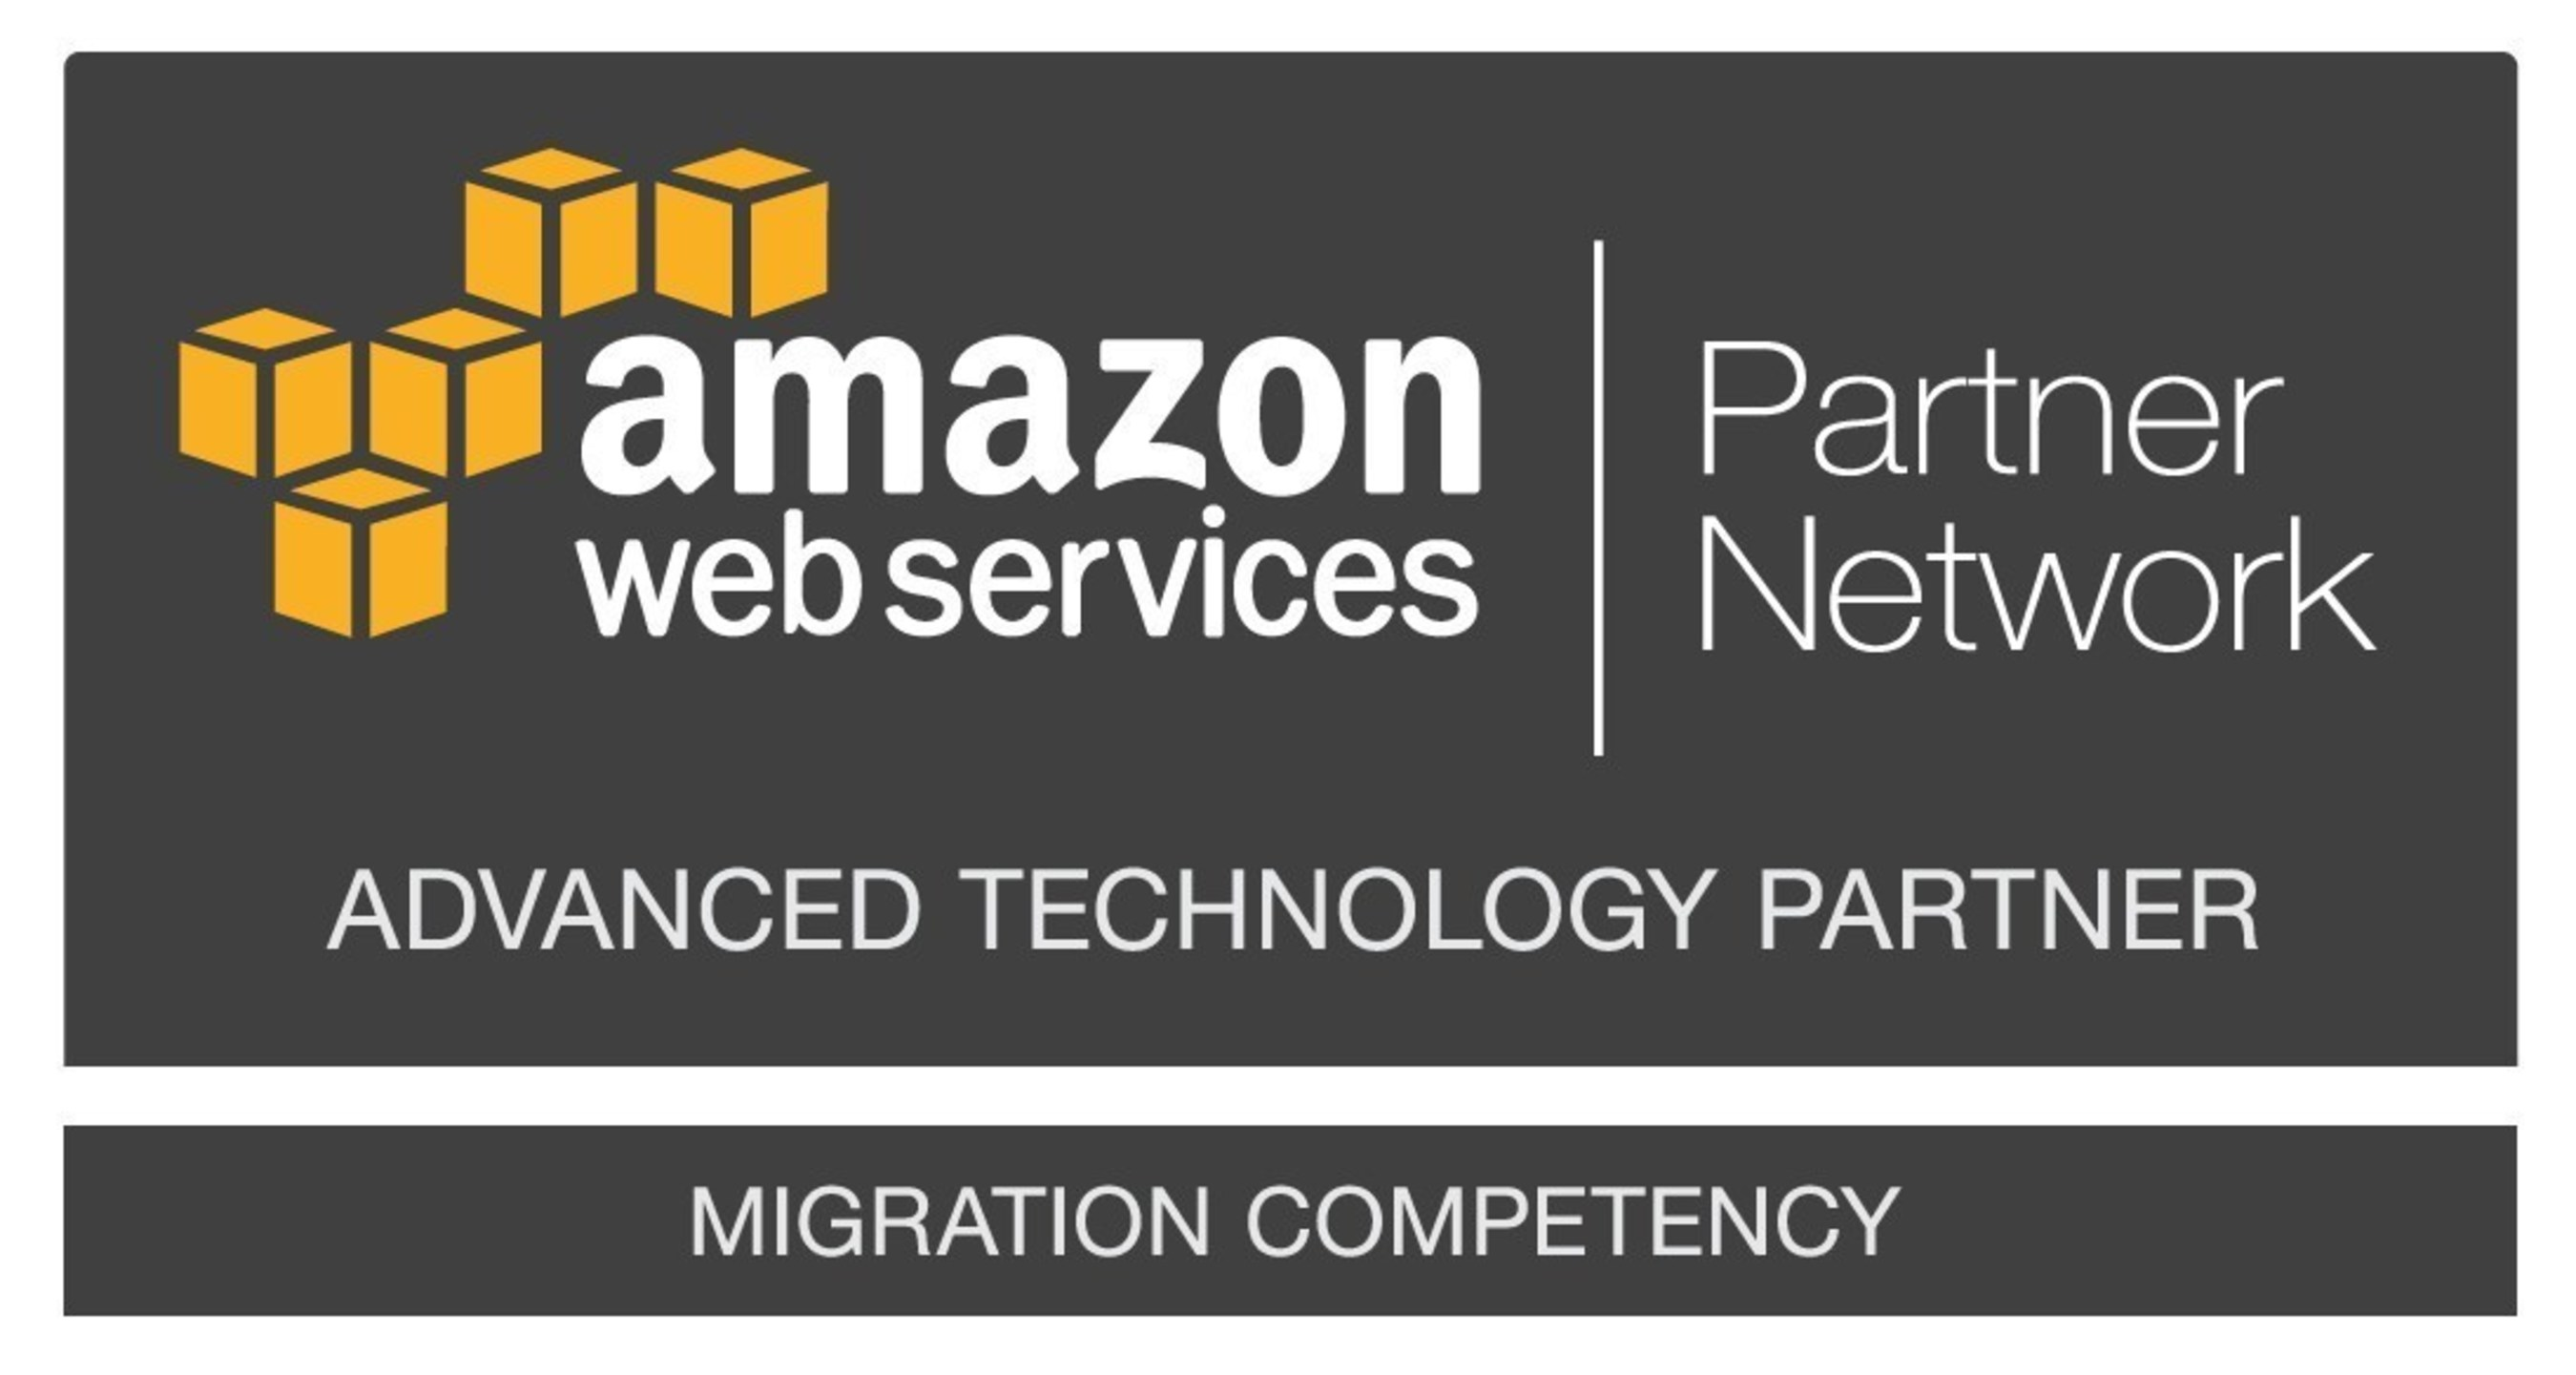 ATADATA Achieves AWS Migration Competency in Two Areas with ATAmotion and ATAvision Automated On-boarding Solutions